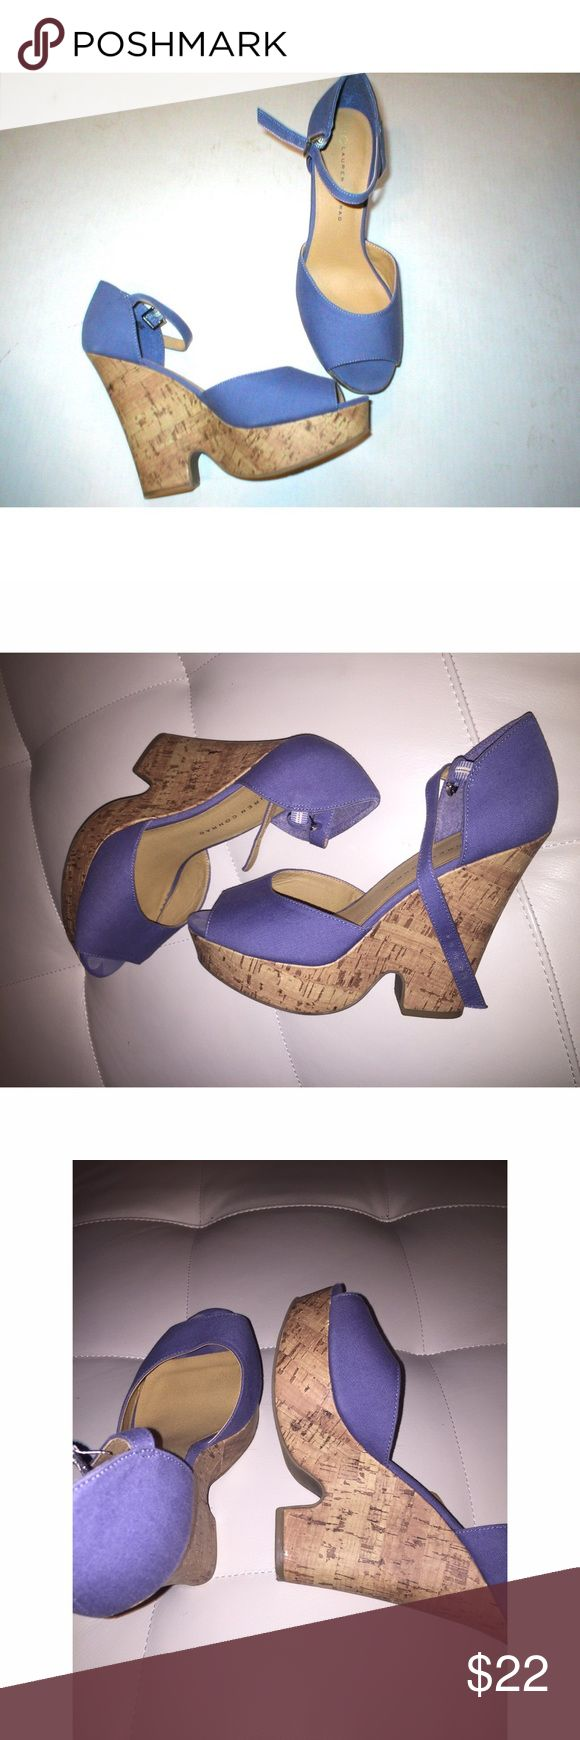 """Purple Wedges Lauren Conrad brand Purple/Lavender Wedges. Wedges measure about 5"""" in height. Size: 8. Like new, no defects. ✨ Worn once LC Lauren Conrad Shoes Wedges"""